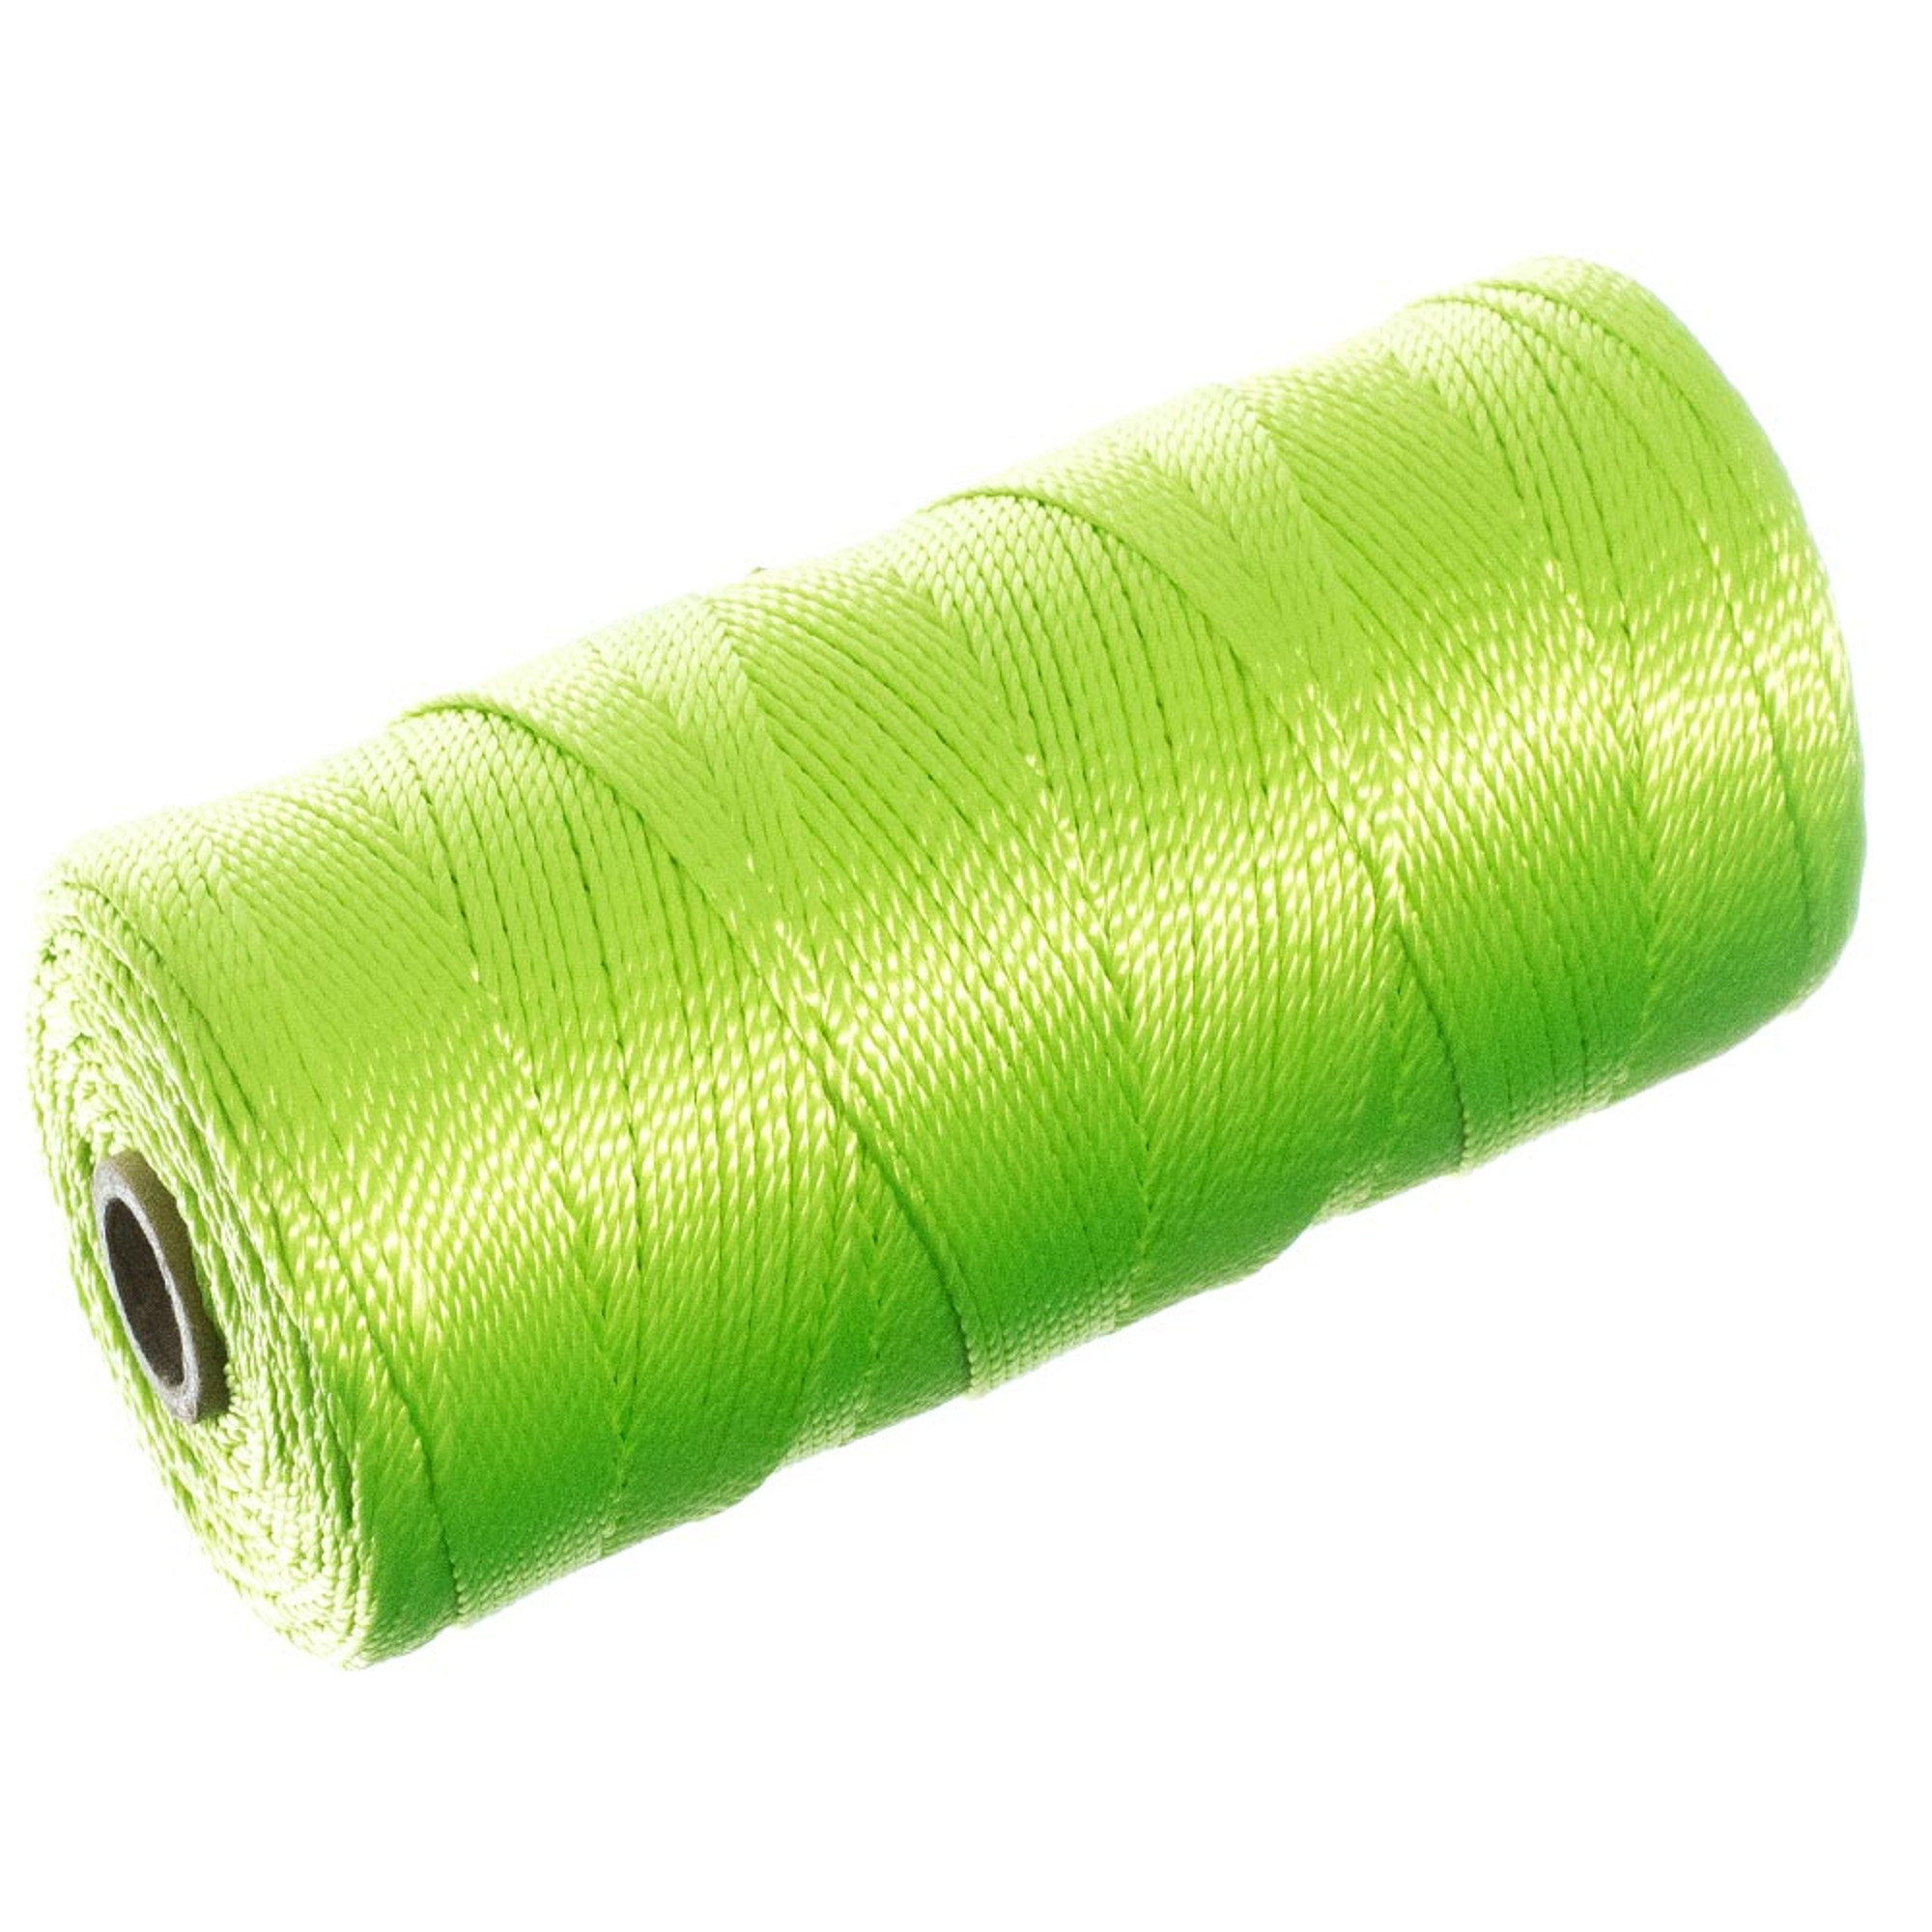 Paracord Planet Twisted Nylon Twine